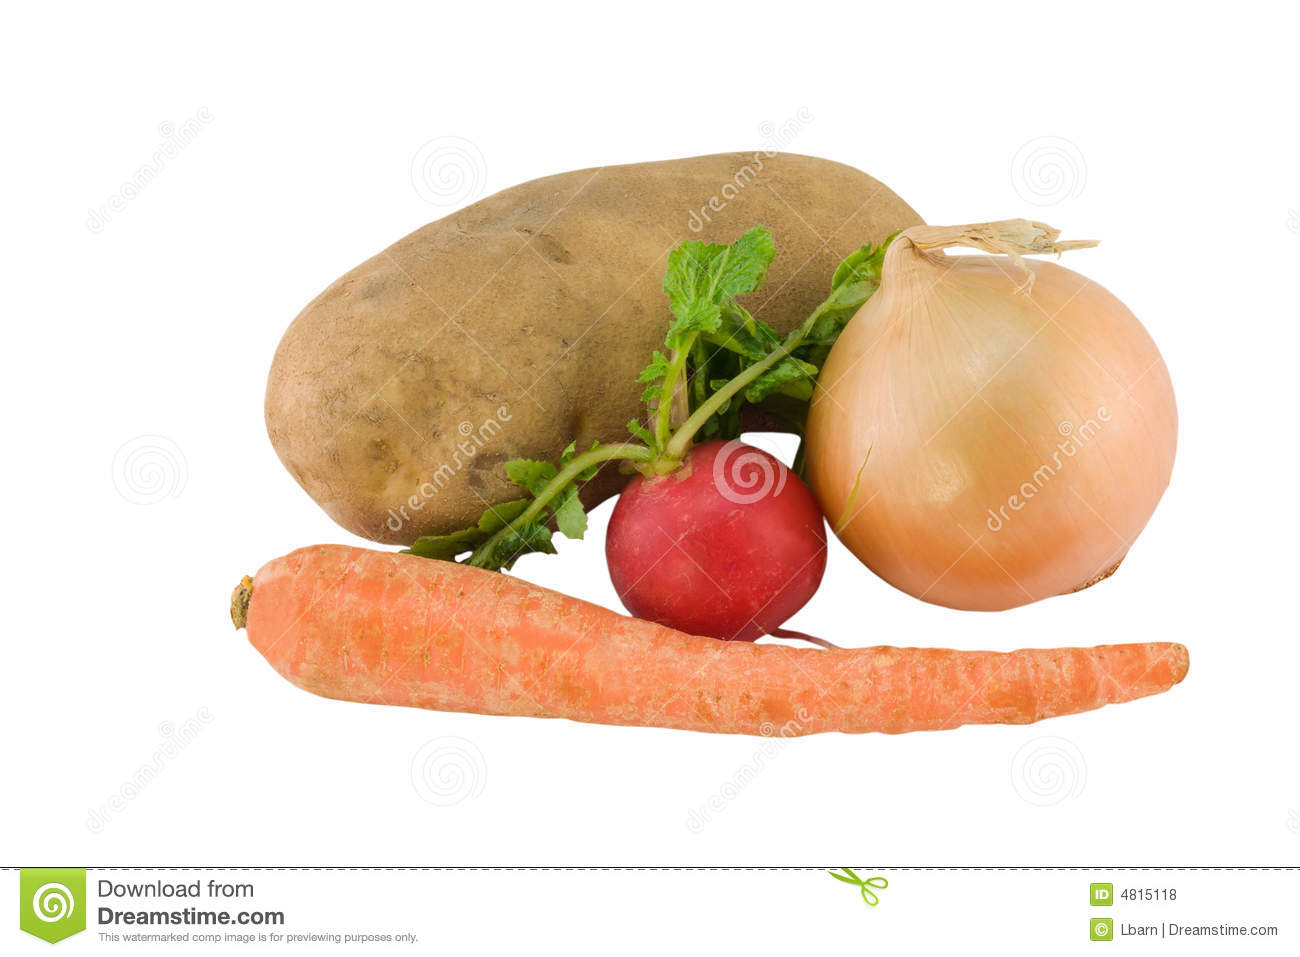 Underground Vegetables On White Stock Photo - Image: 4815118